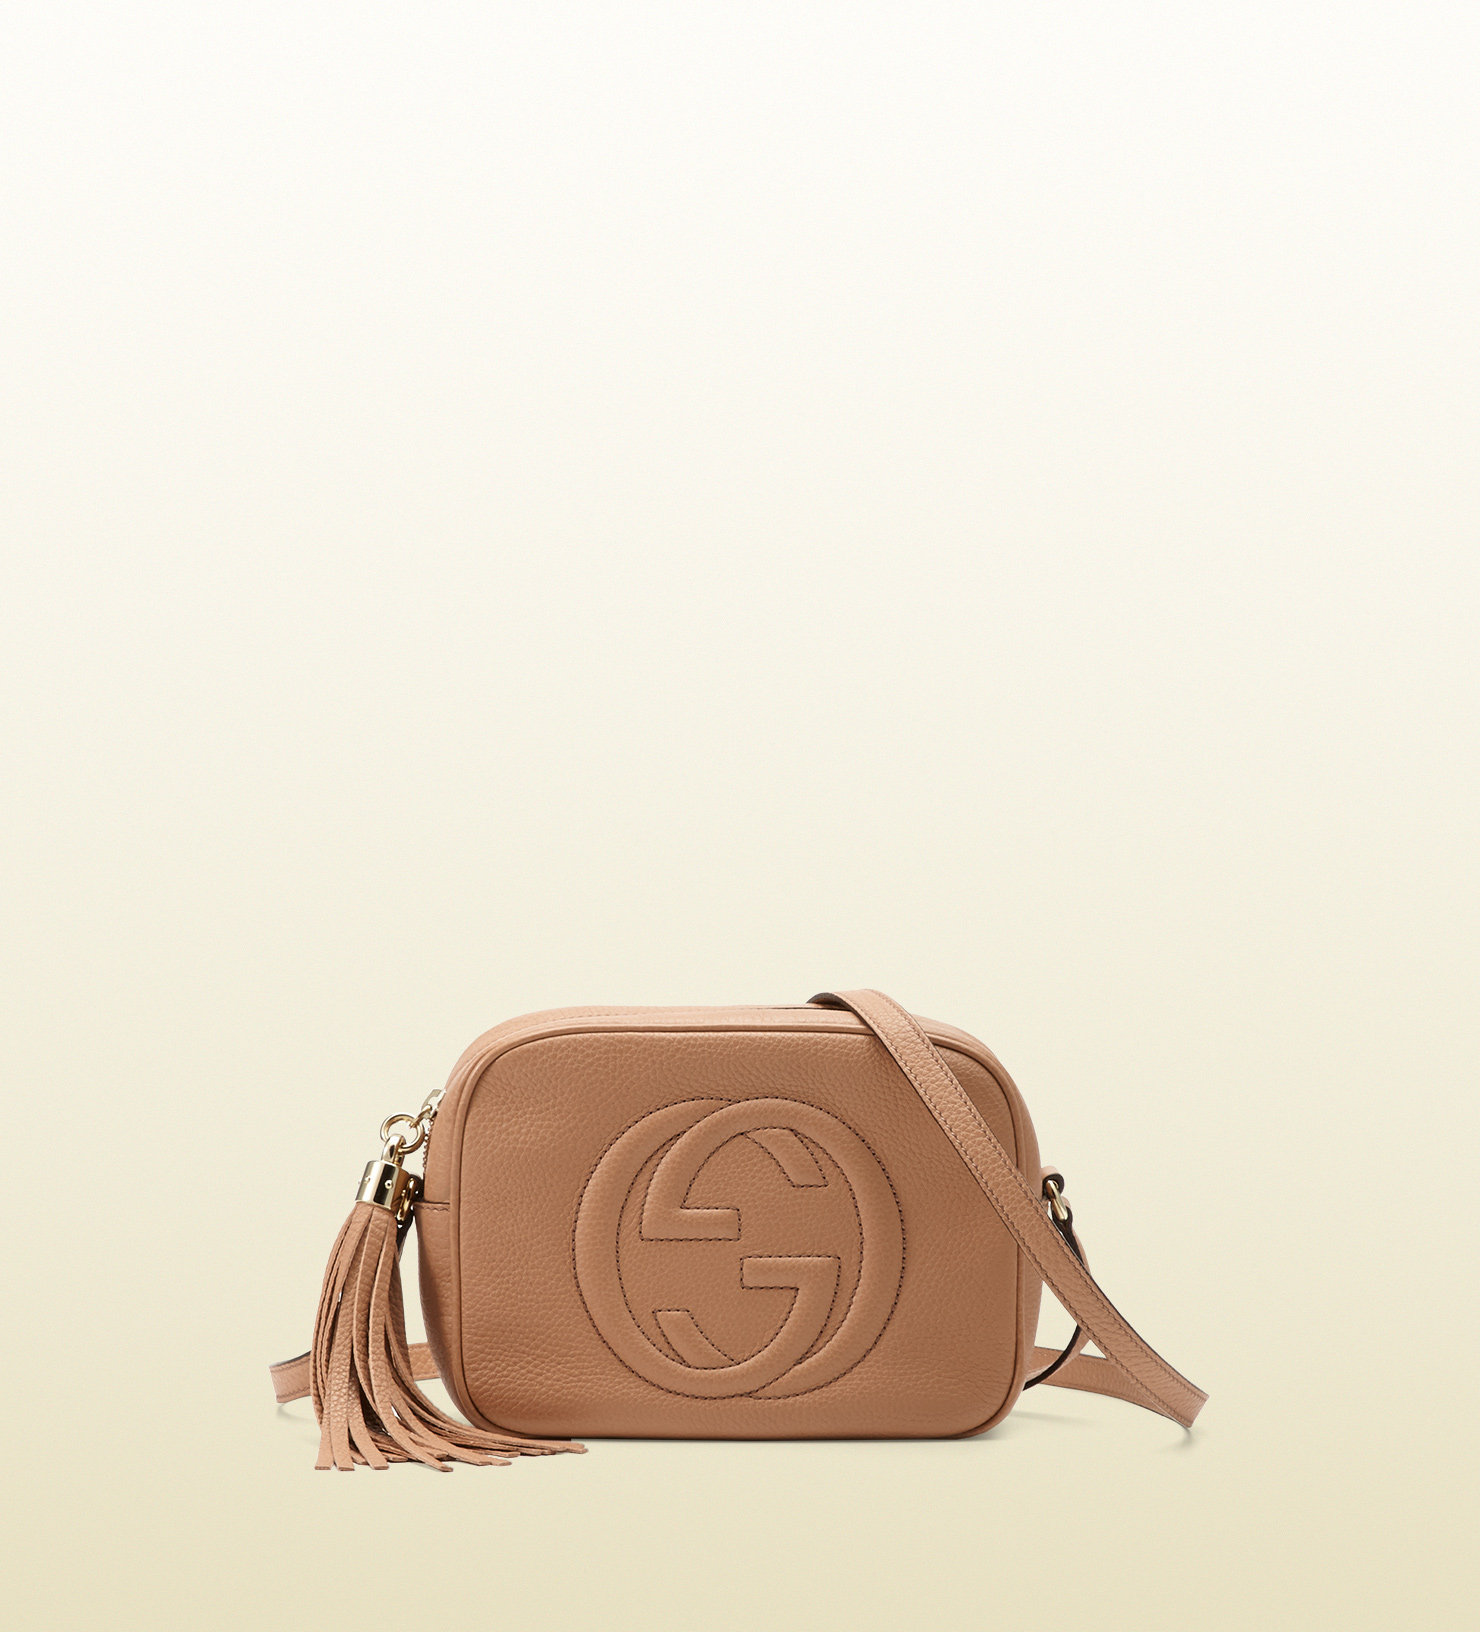 2170aa31828 Gucci Soho Leather Disco Bag in Natural - Lyst